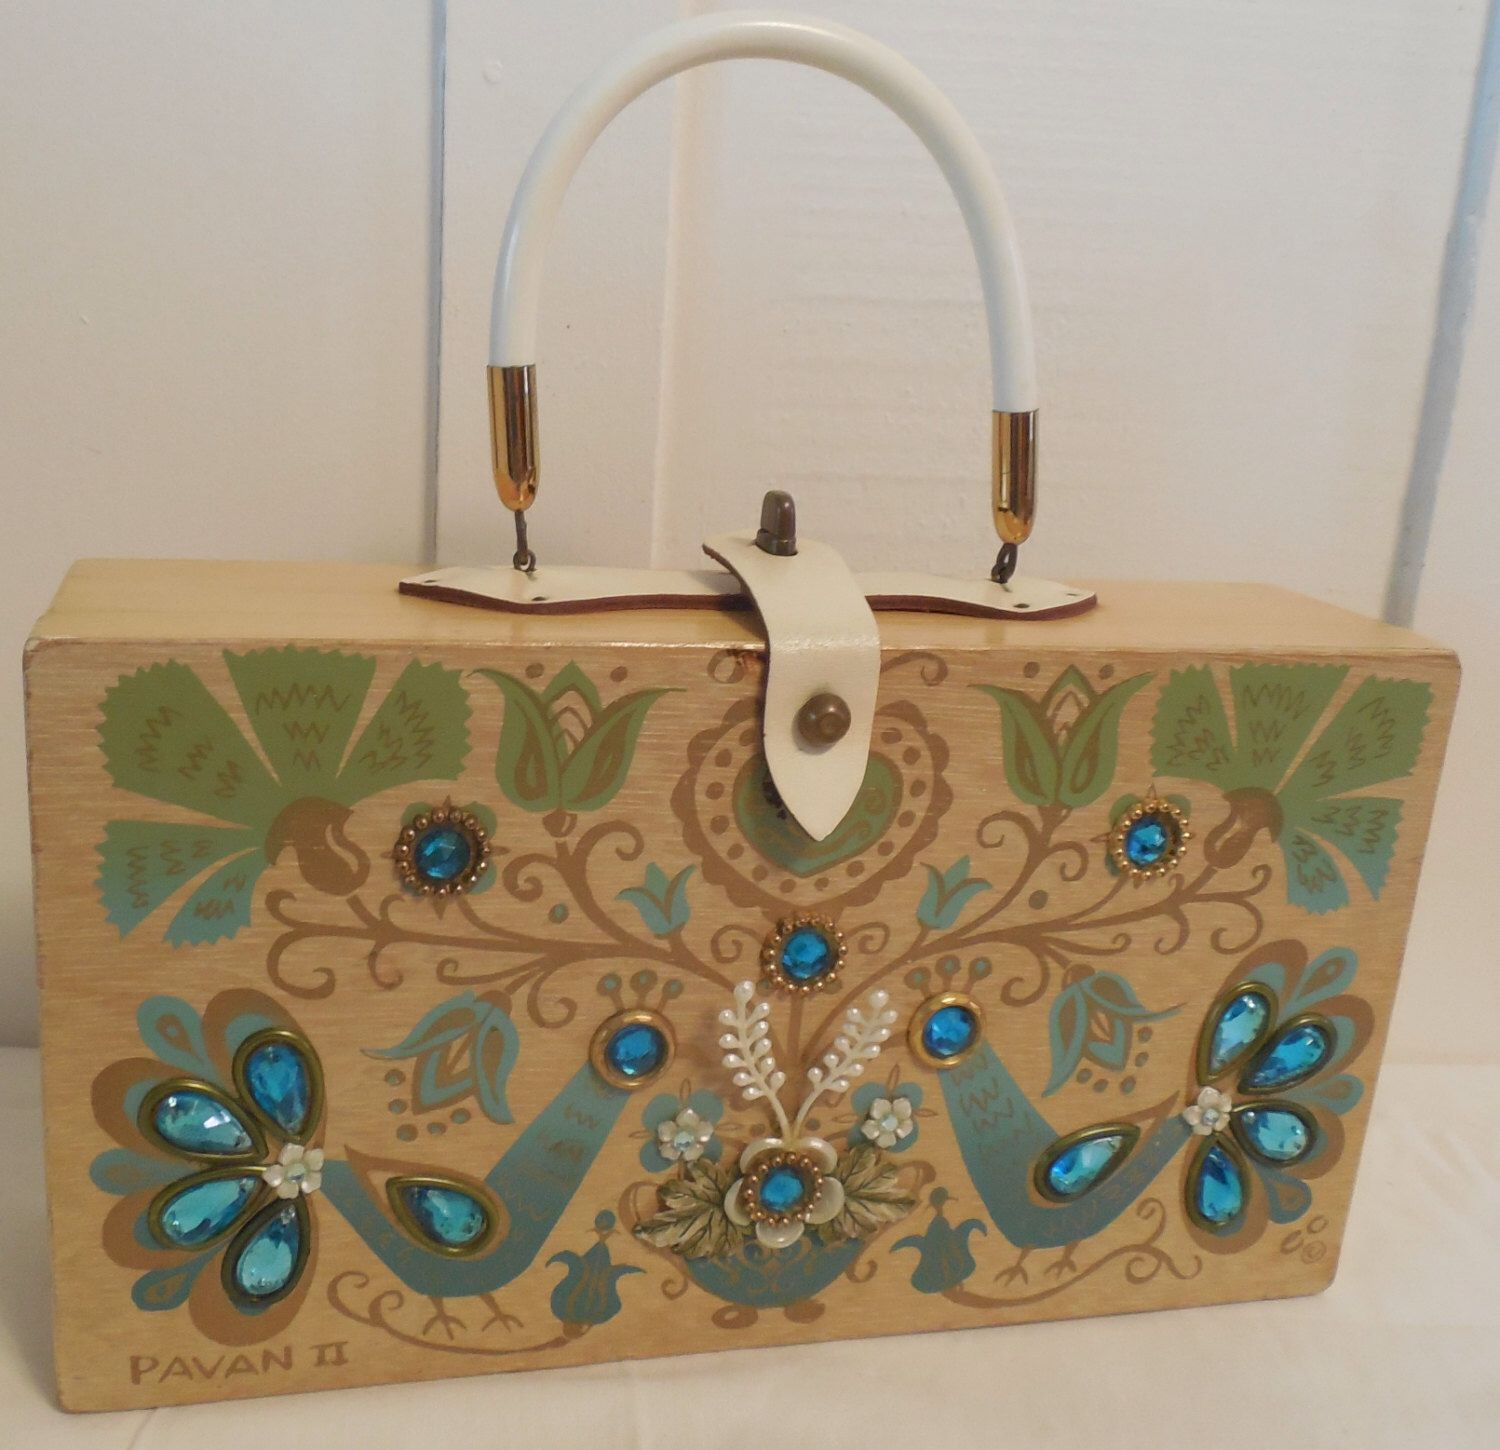 Enid Collins Pavan II Box Purse 12